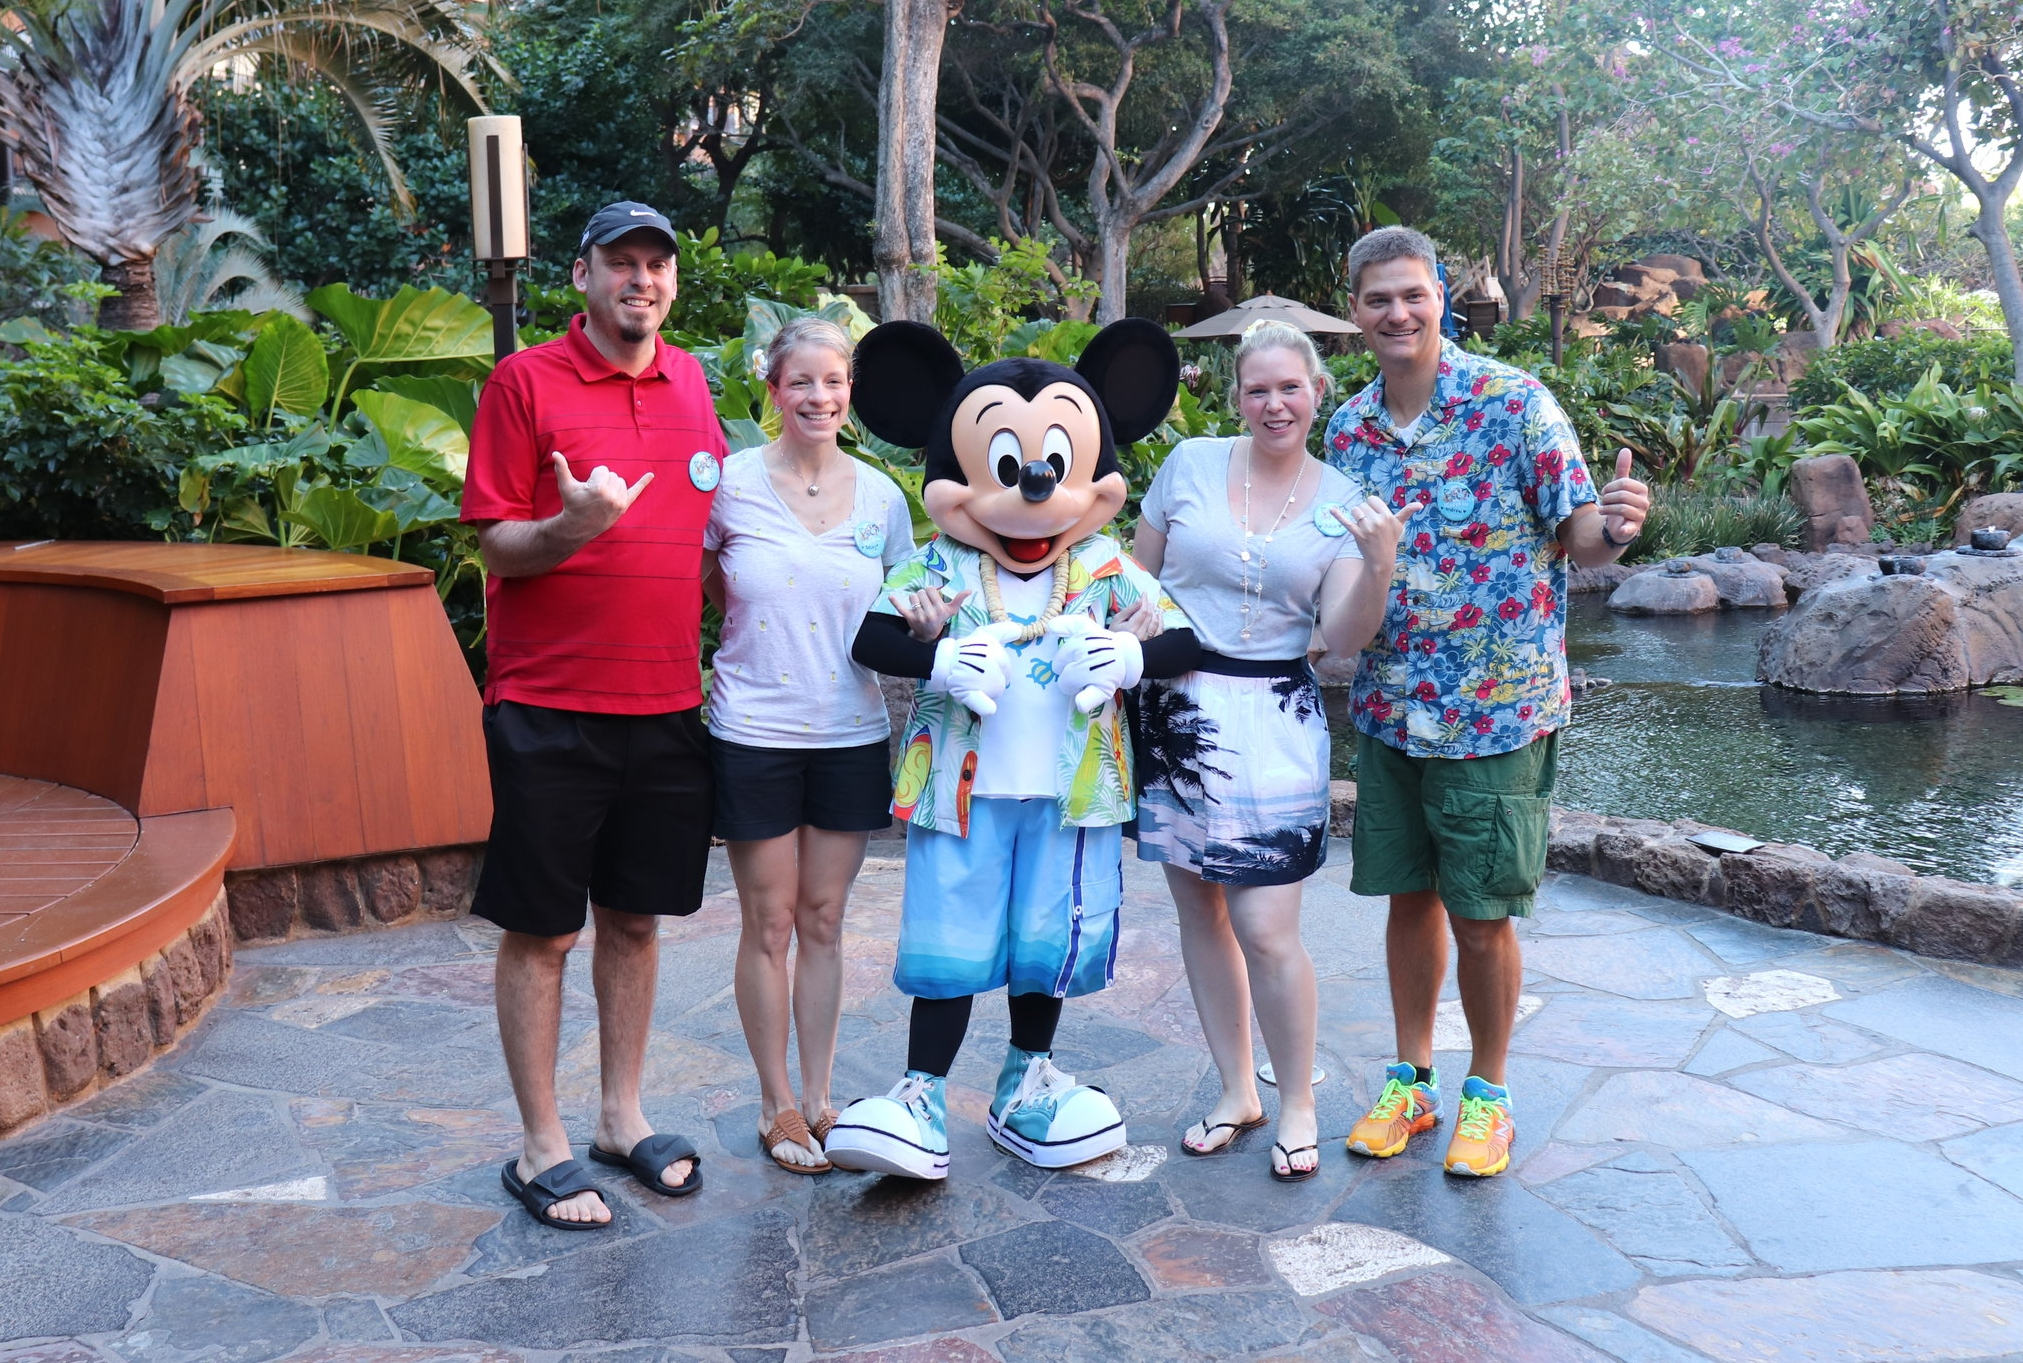 Hanging with Mickey!